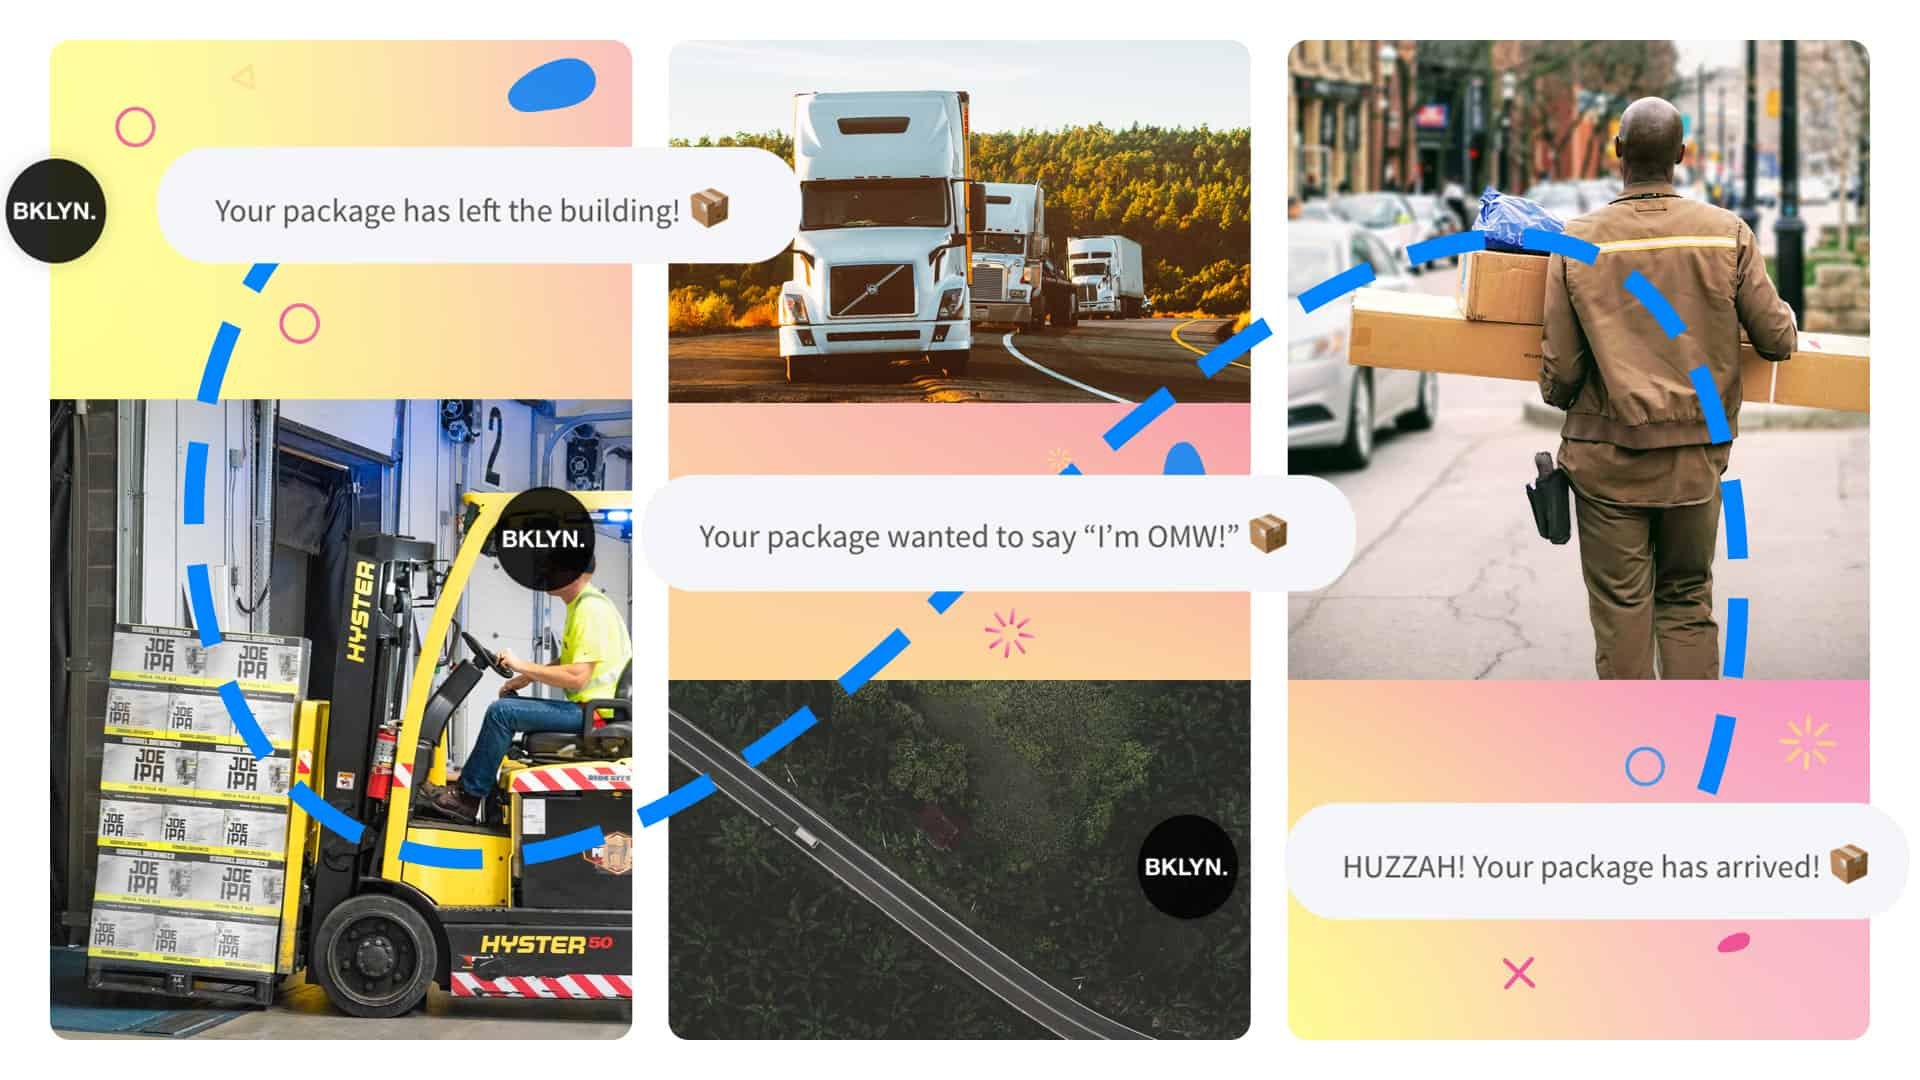 Three panels show message notifications related to an order leaving a warehouse, in transit, and the last mile delivery of the package.